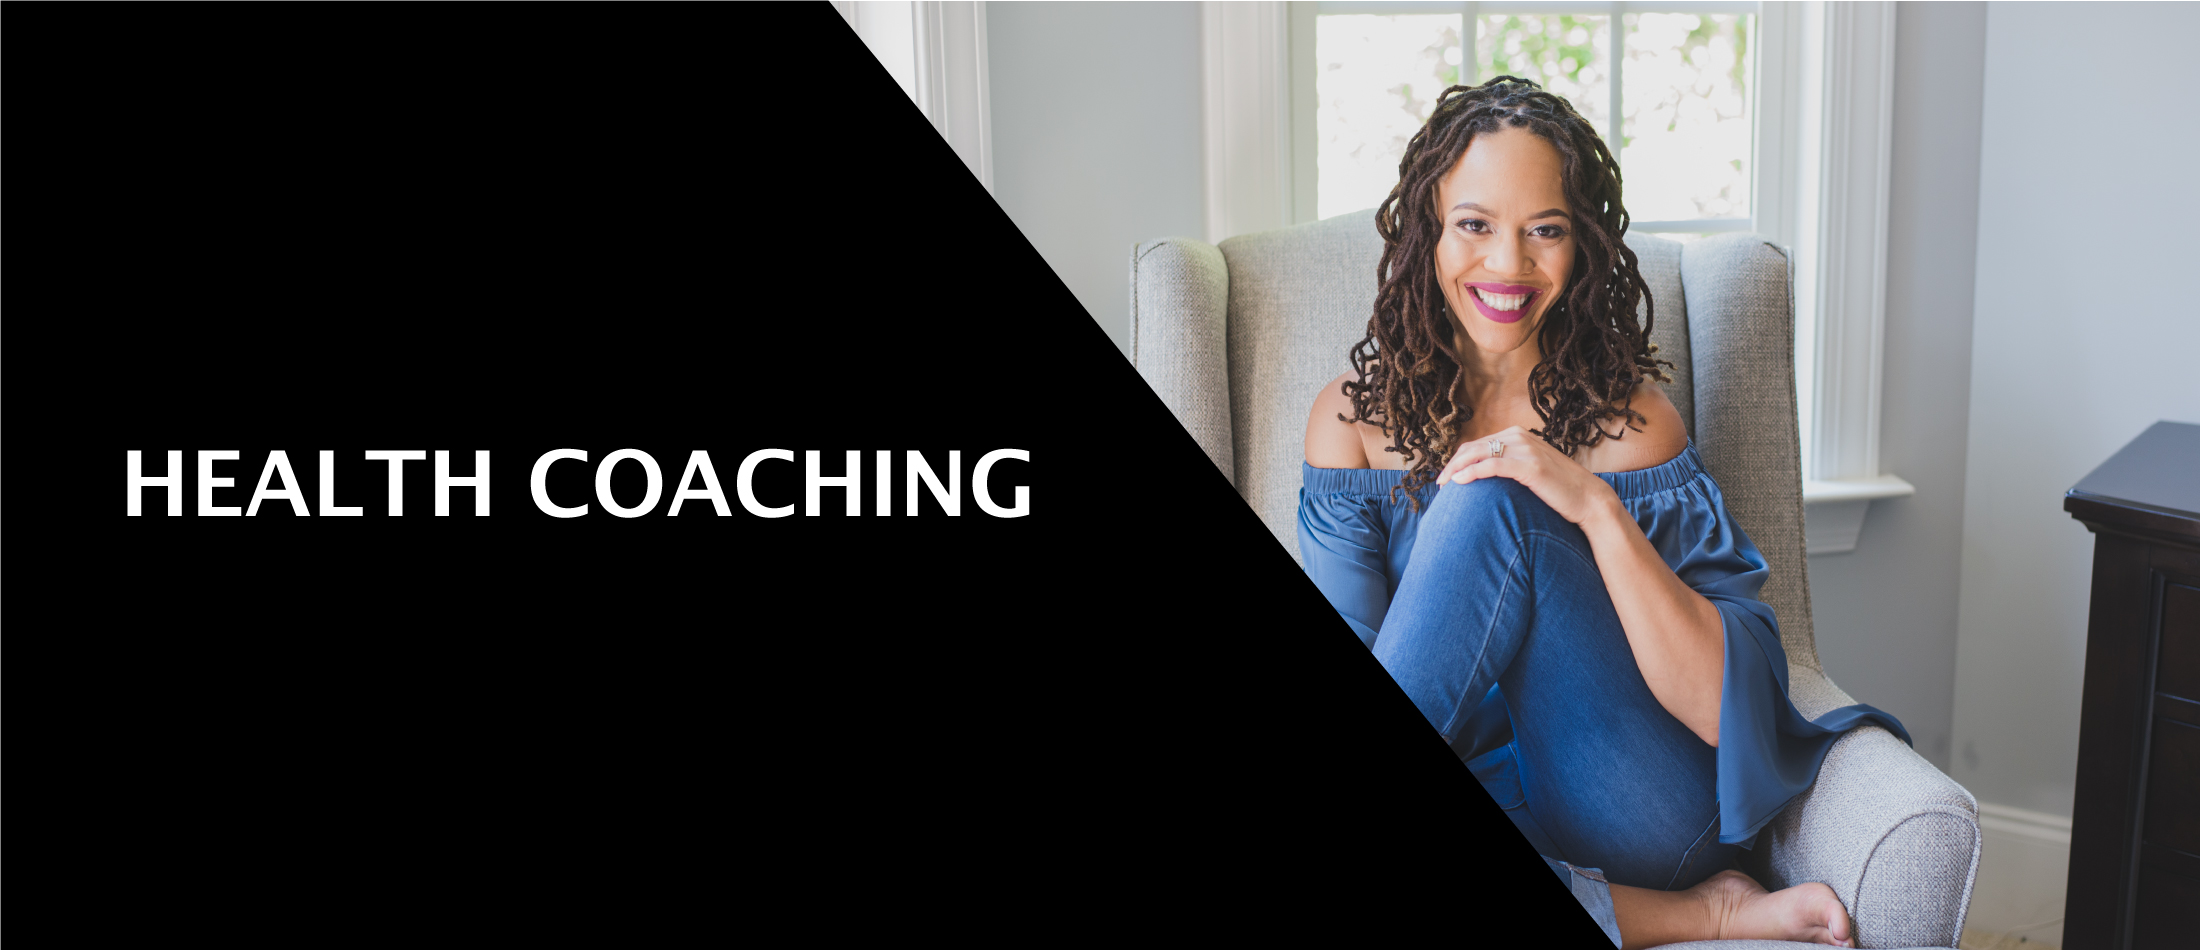 Health Coaching Featured